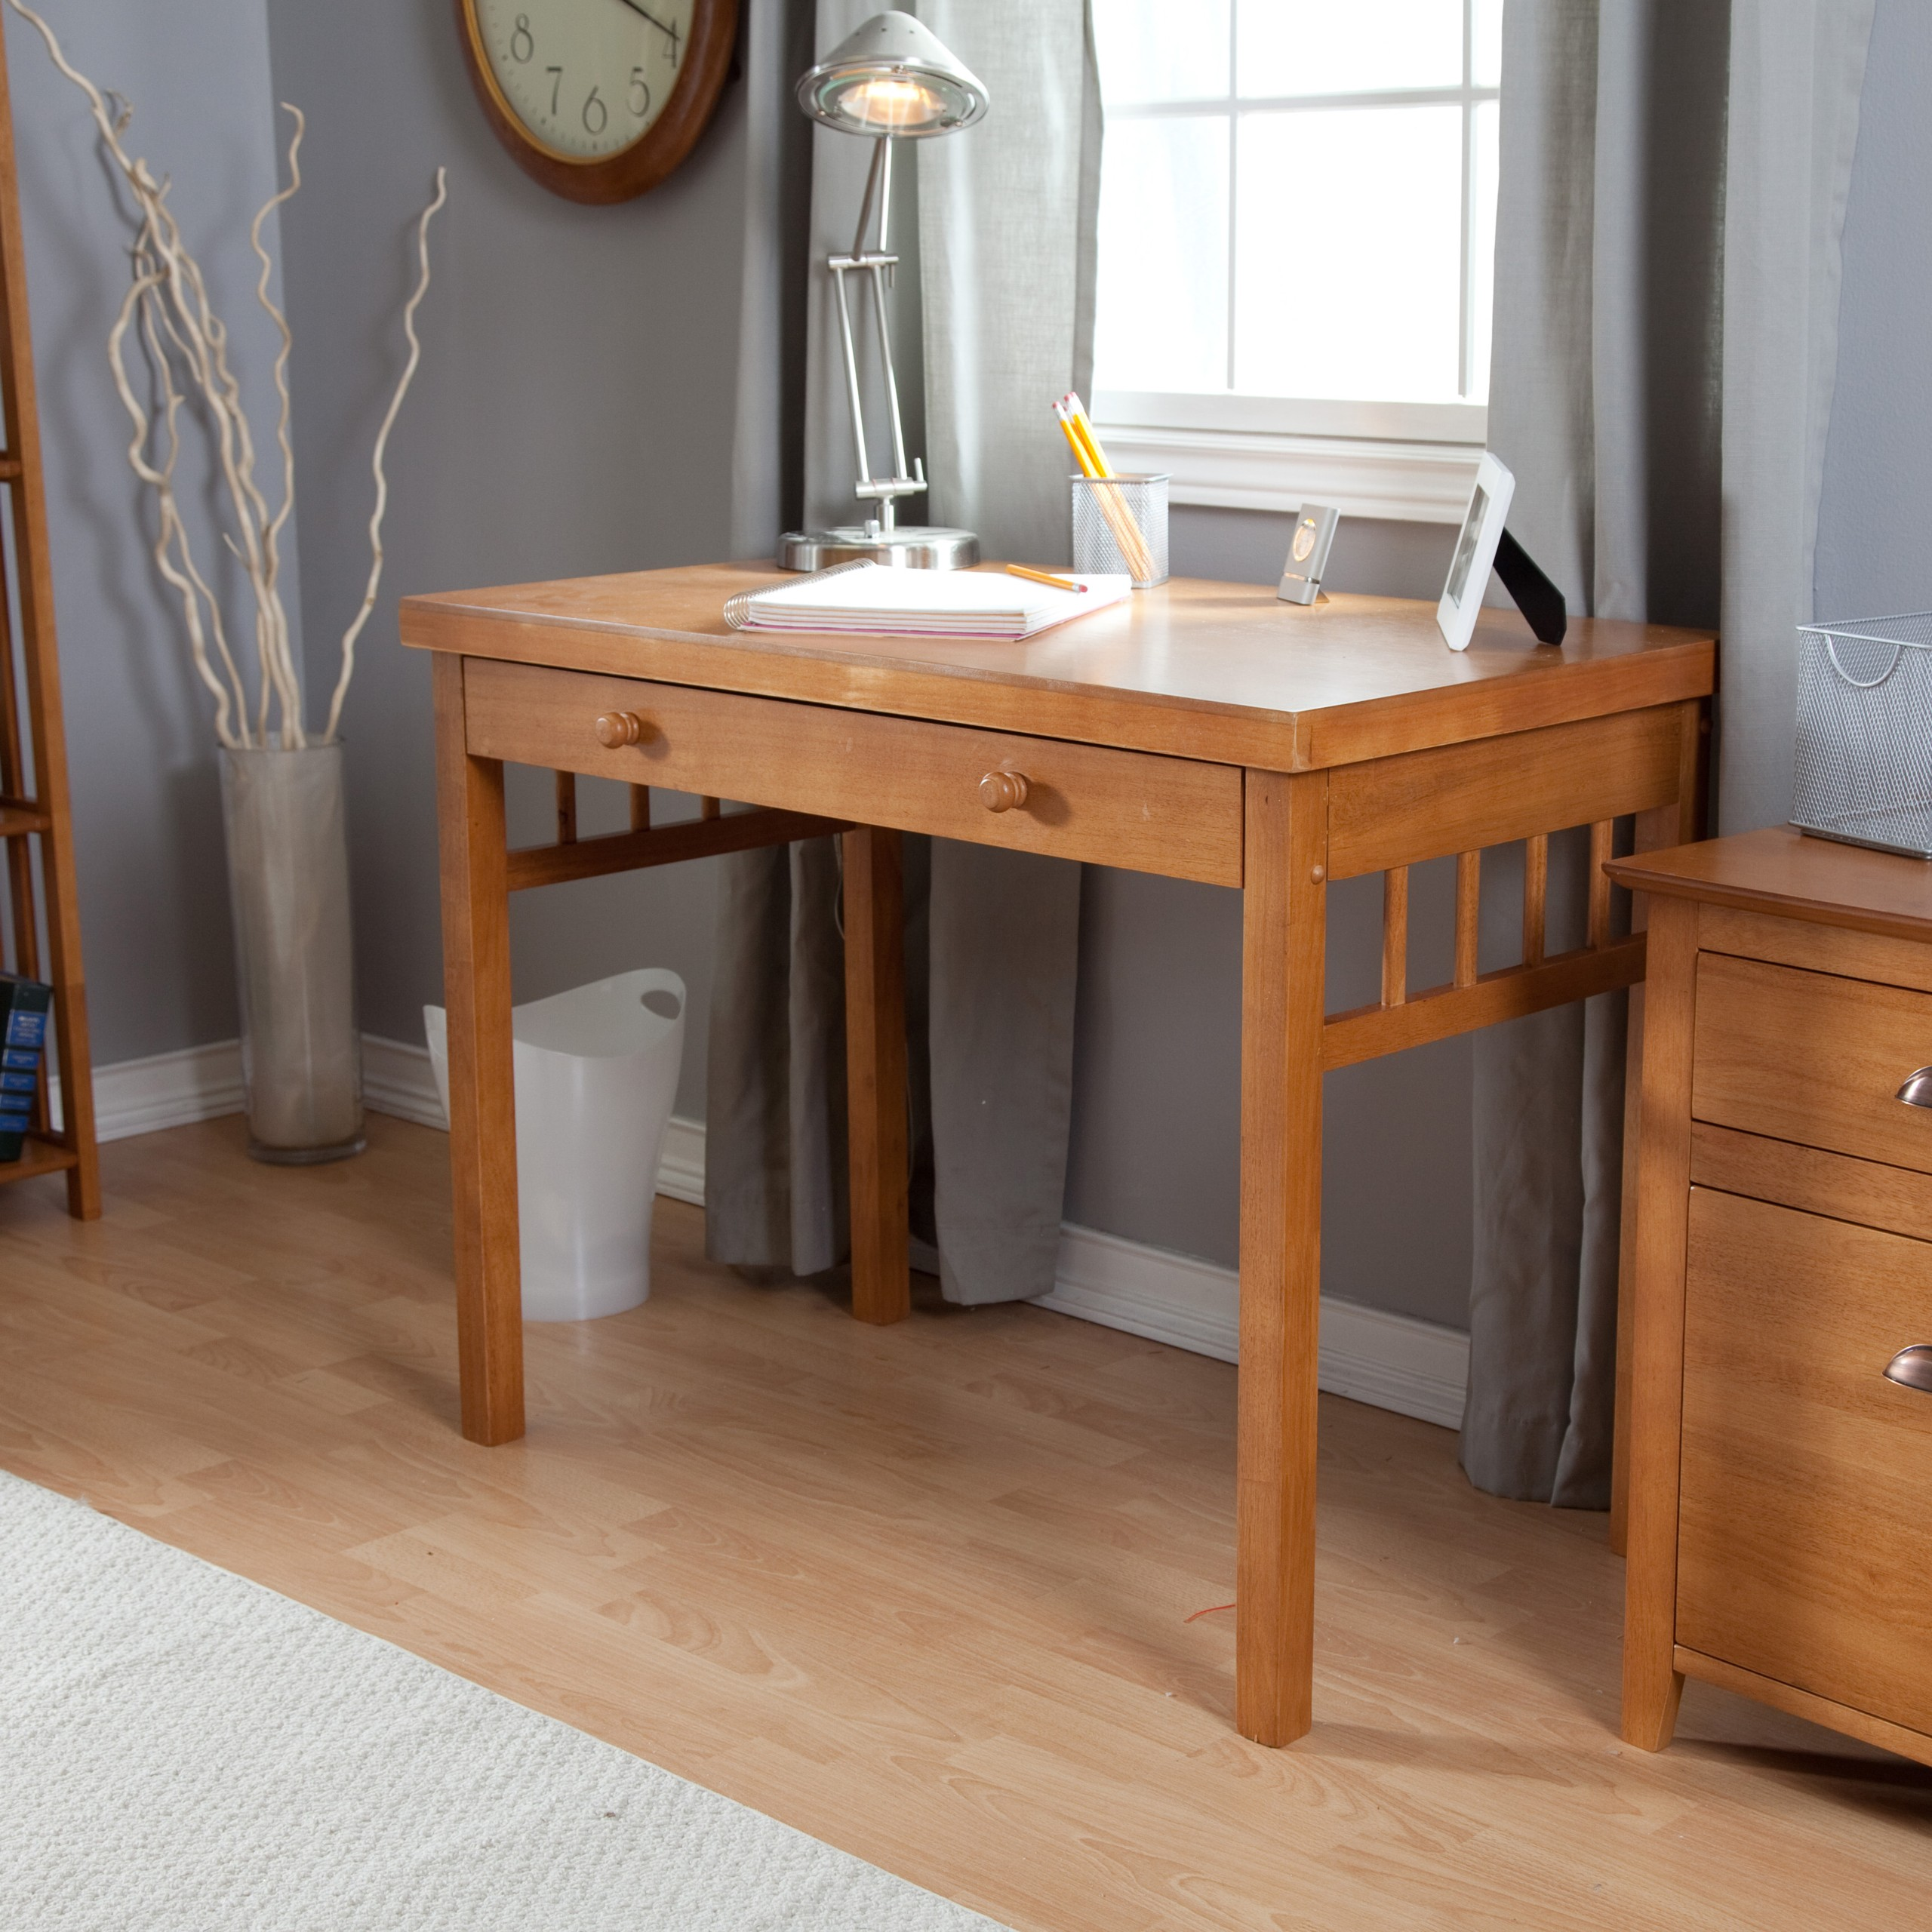 Home office small desk Hallway Hadley Mission Home Office Small Oak Desk House Of Oak Sofas Amazing Small Secretary Desk For Small Spaces Ideas On Foter